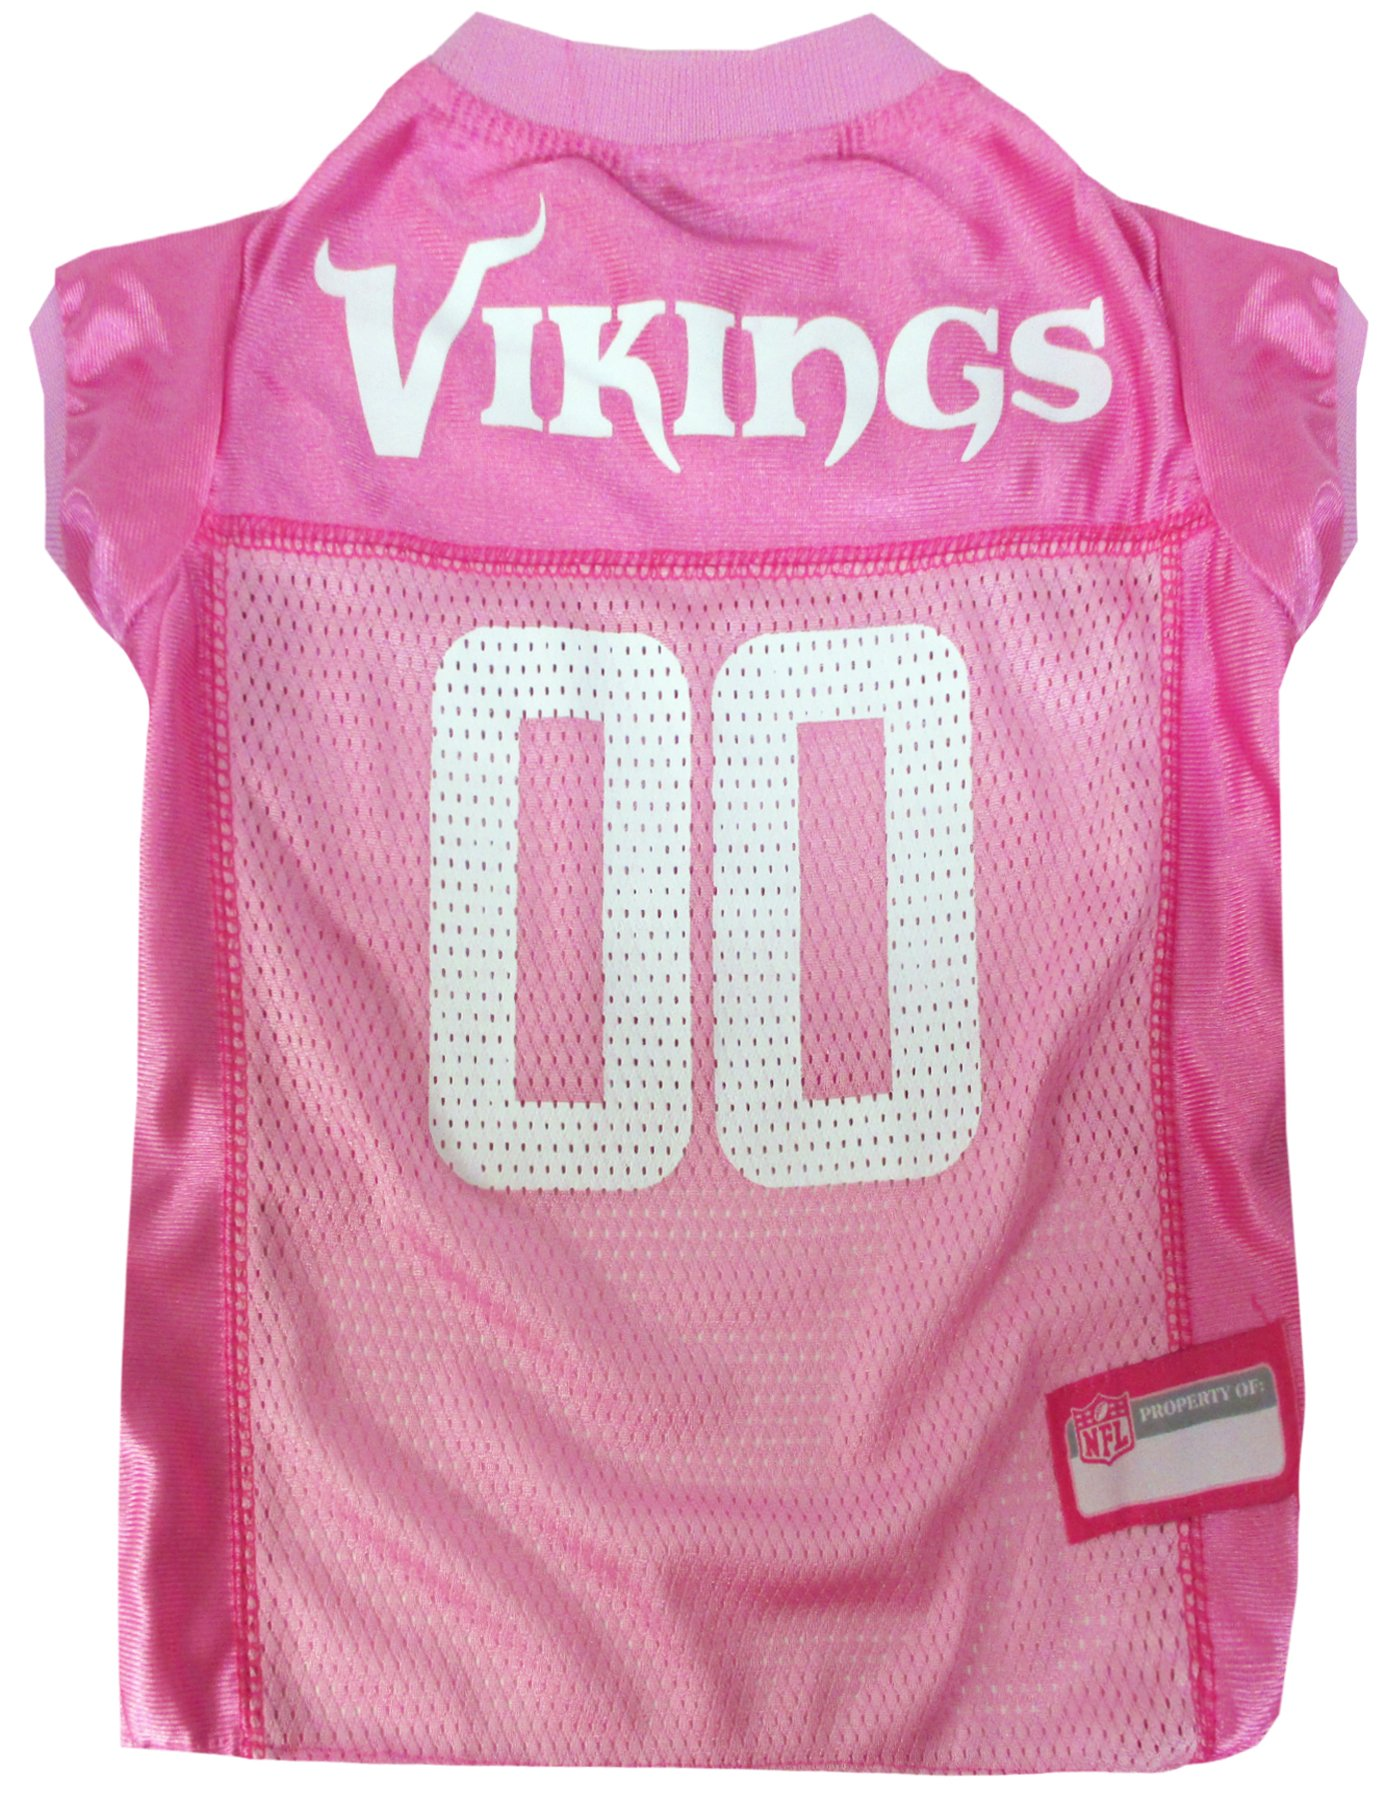 Pets First NFL MINNESOTA VIKINGS DOG Jersey Pink, Small. - Football Pet Jersey in PINK